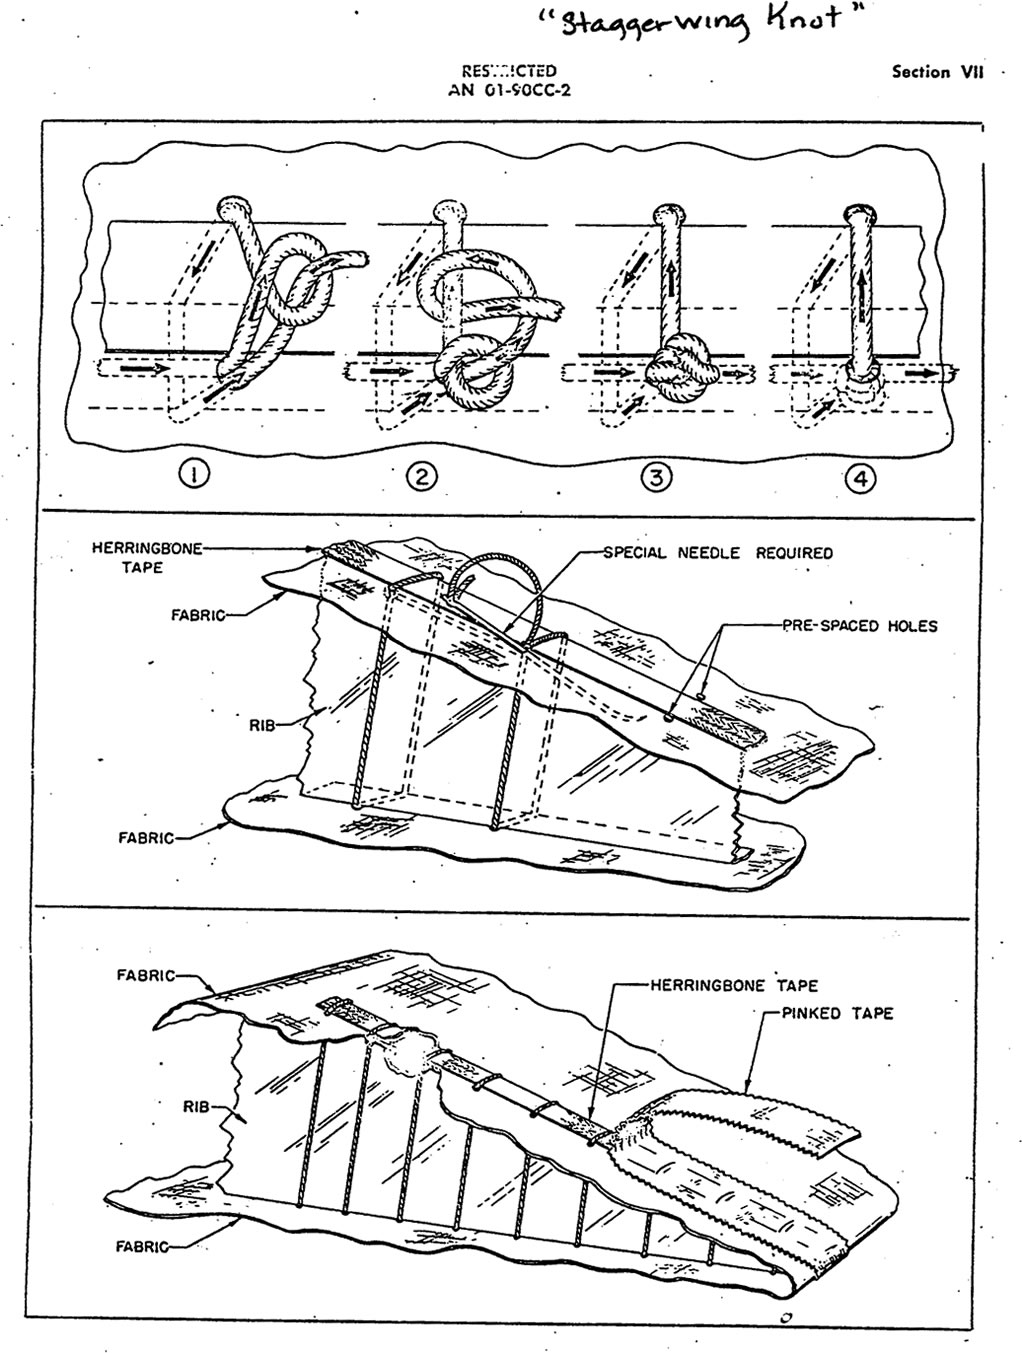 Rib Lacing With Beech Staggerwing Knot - Technical Tasks